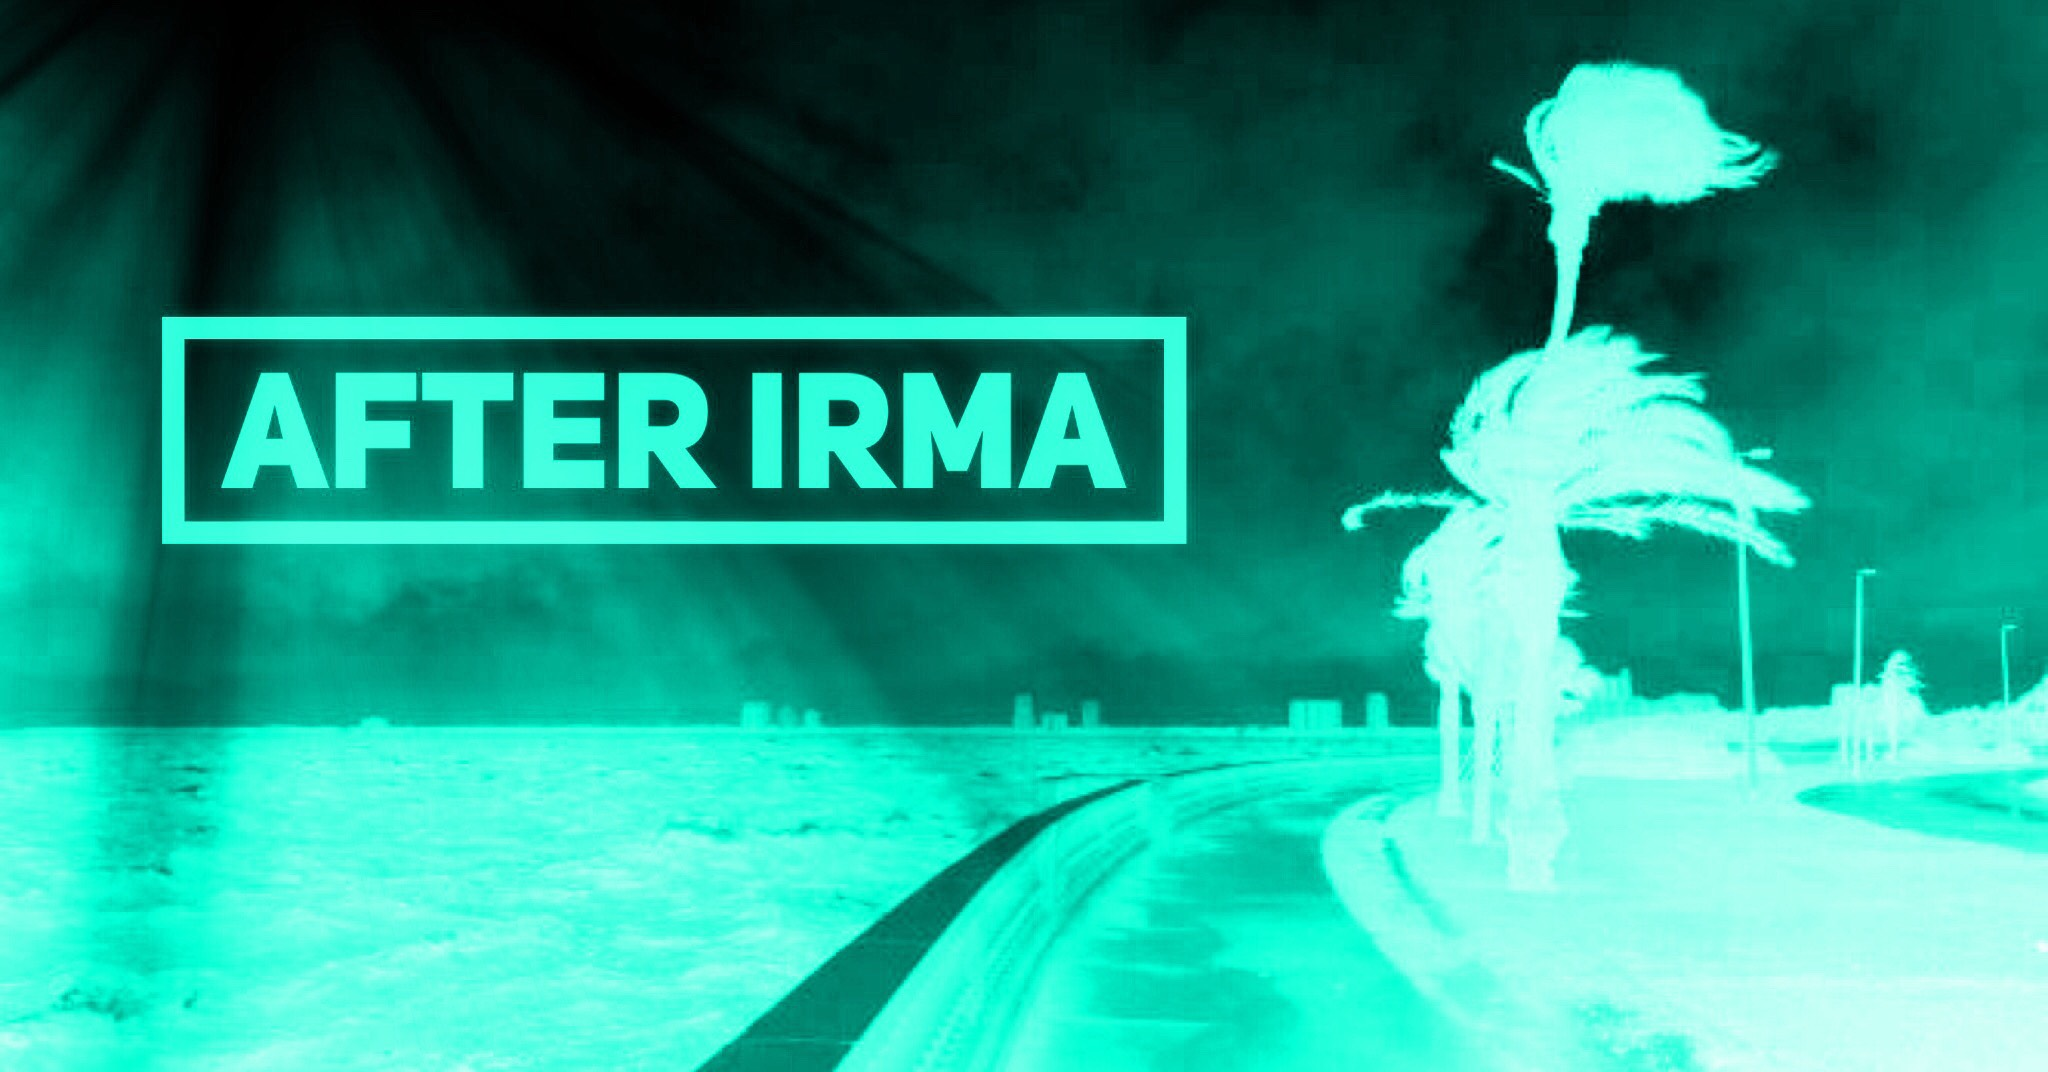 After Irma 003